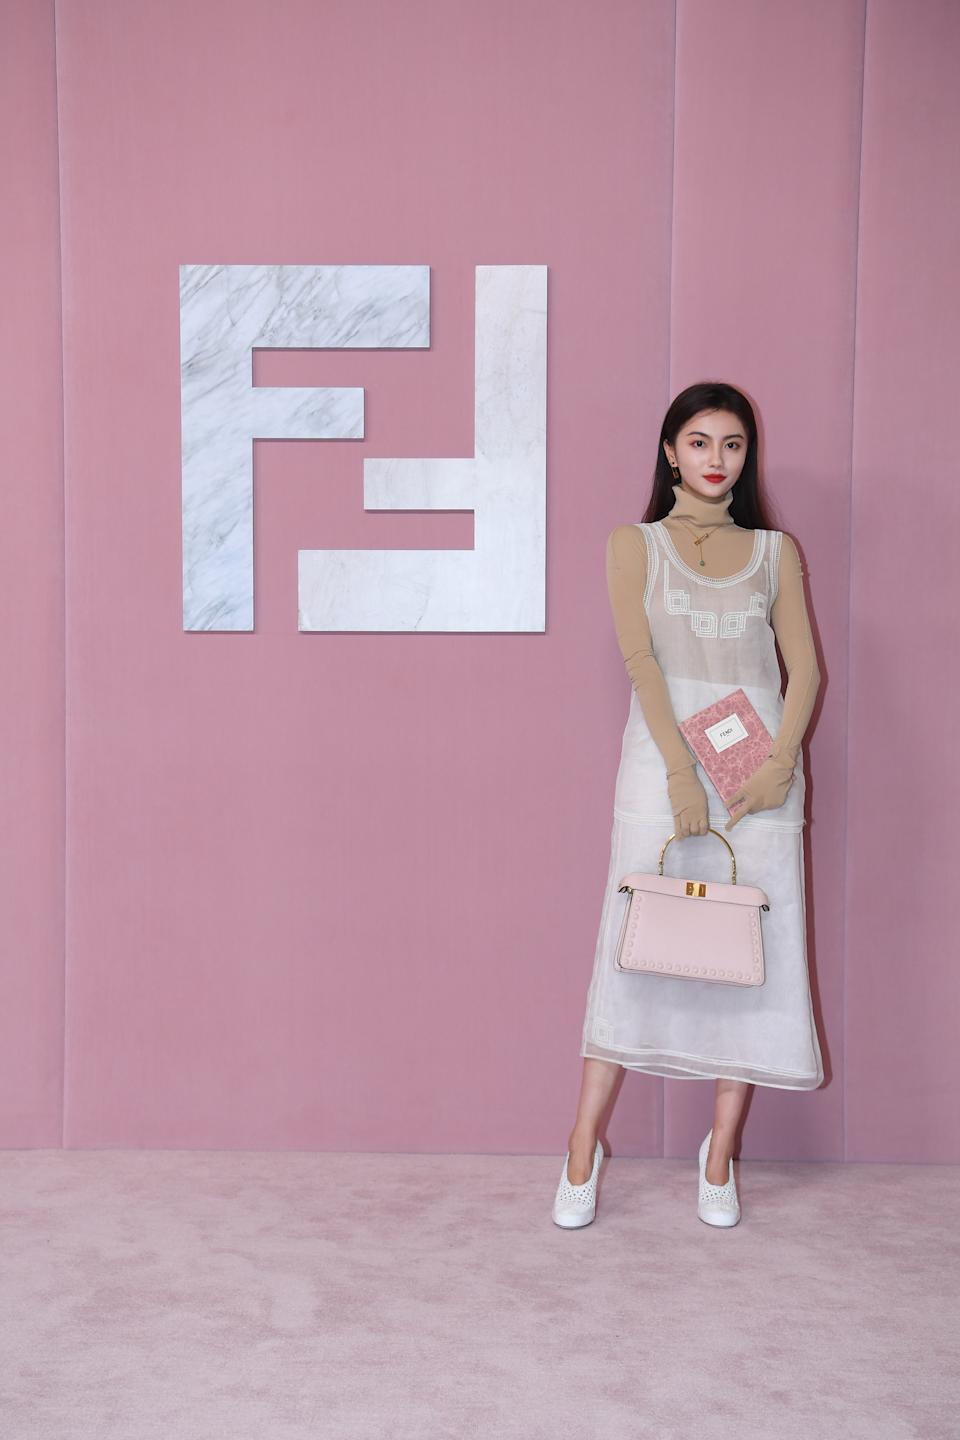 Influencer Donggua Didi at Fendi Shanghai show. (PHOTO: Fendi)